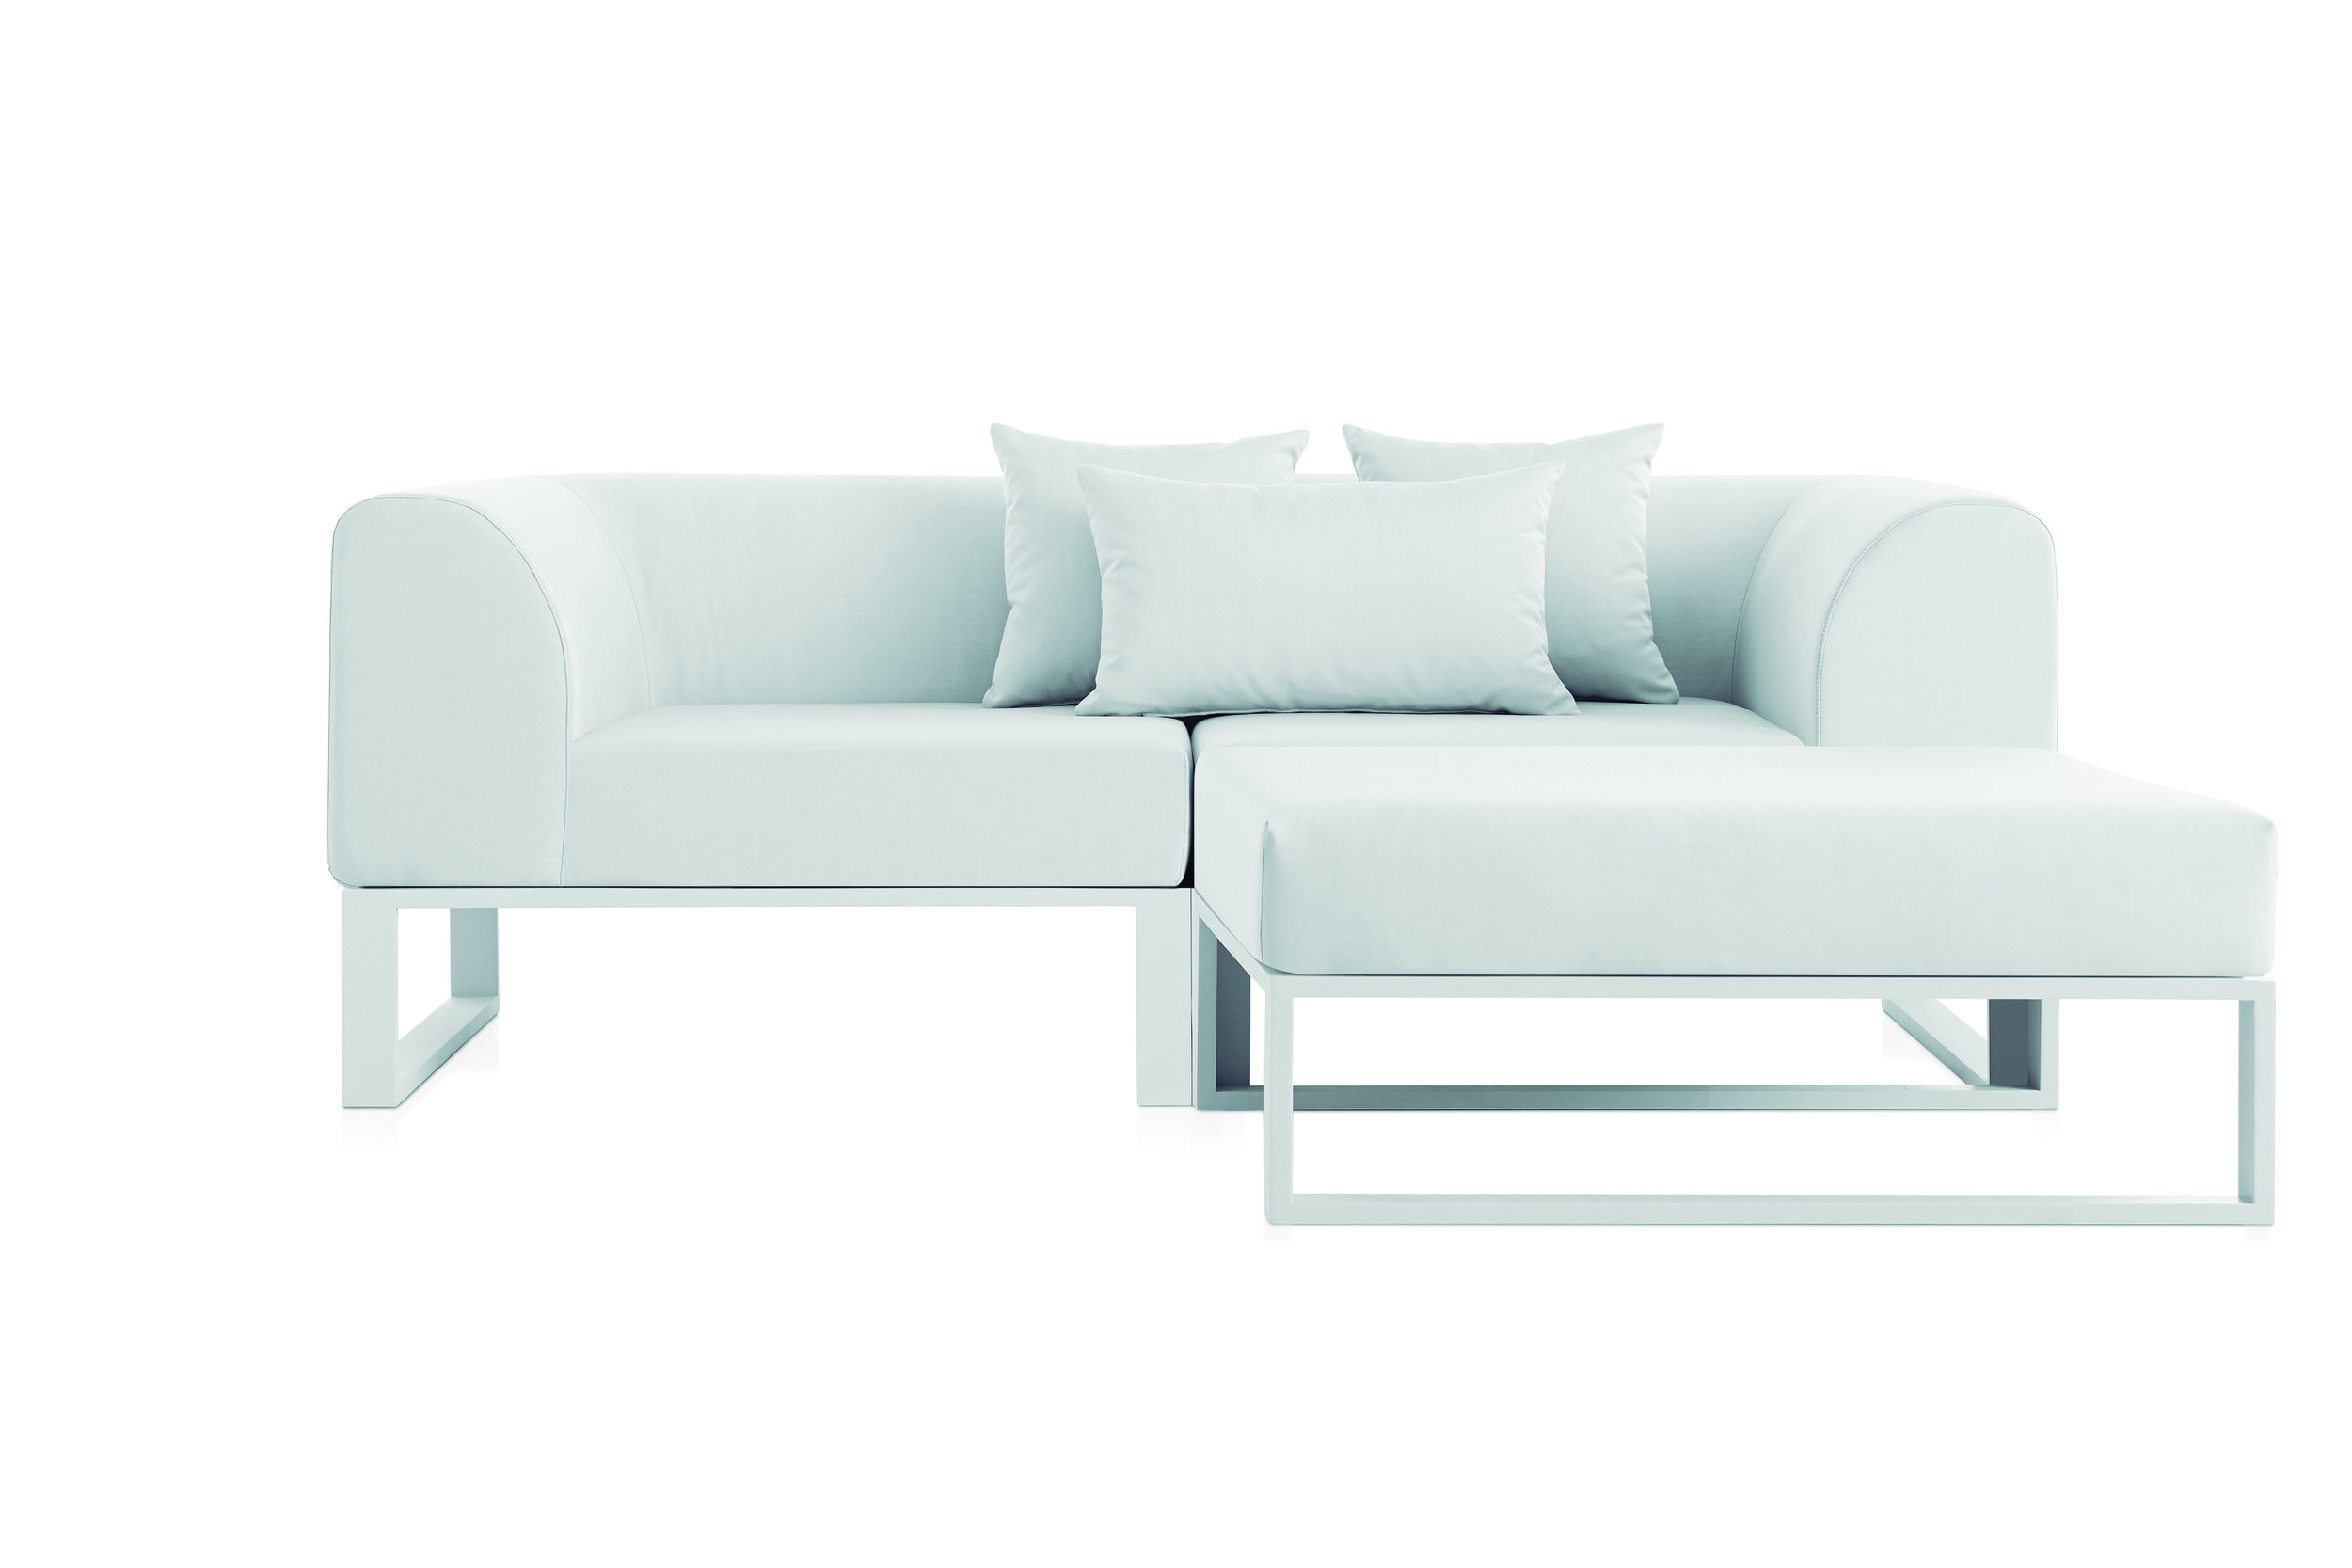 Ploid sofa modular lounger 2p white.jpg